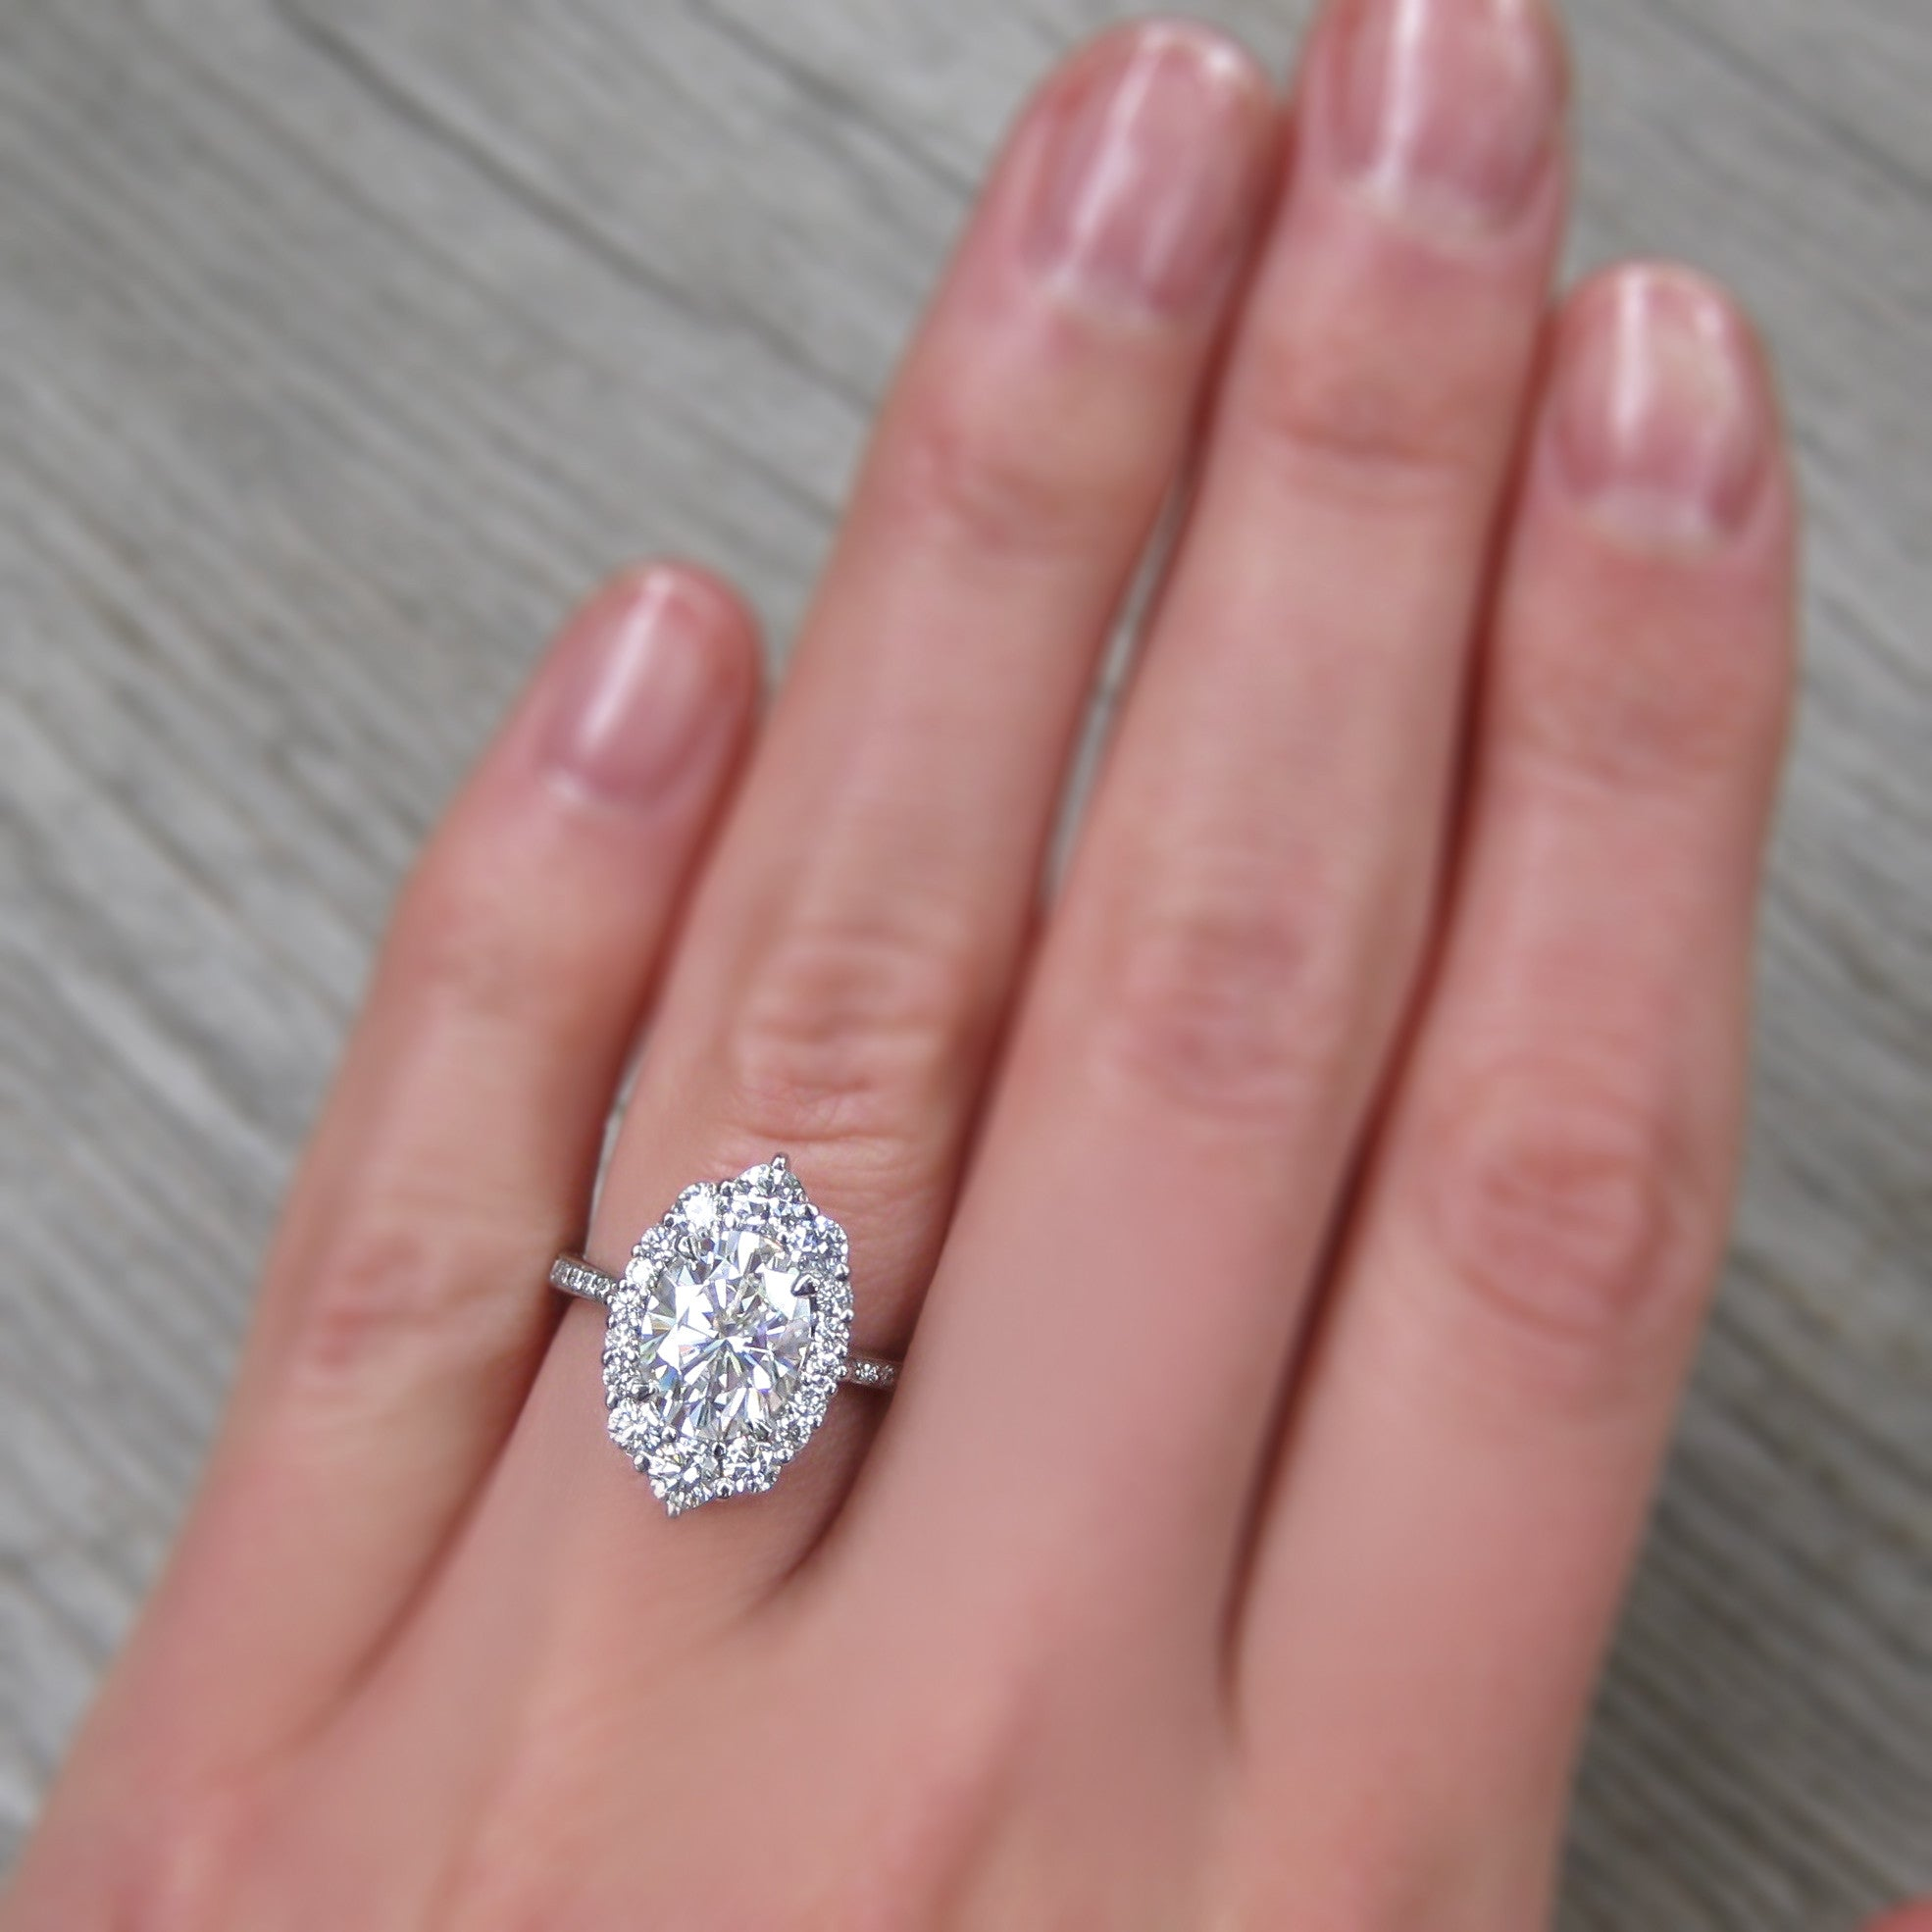 Forever One Moissanite Engagement Ring With Diamond Halo